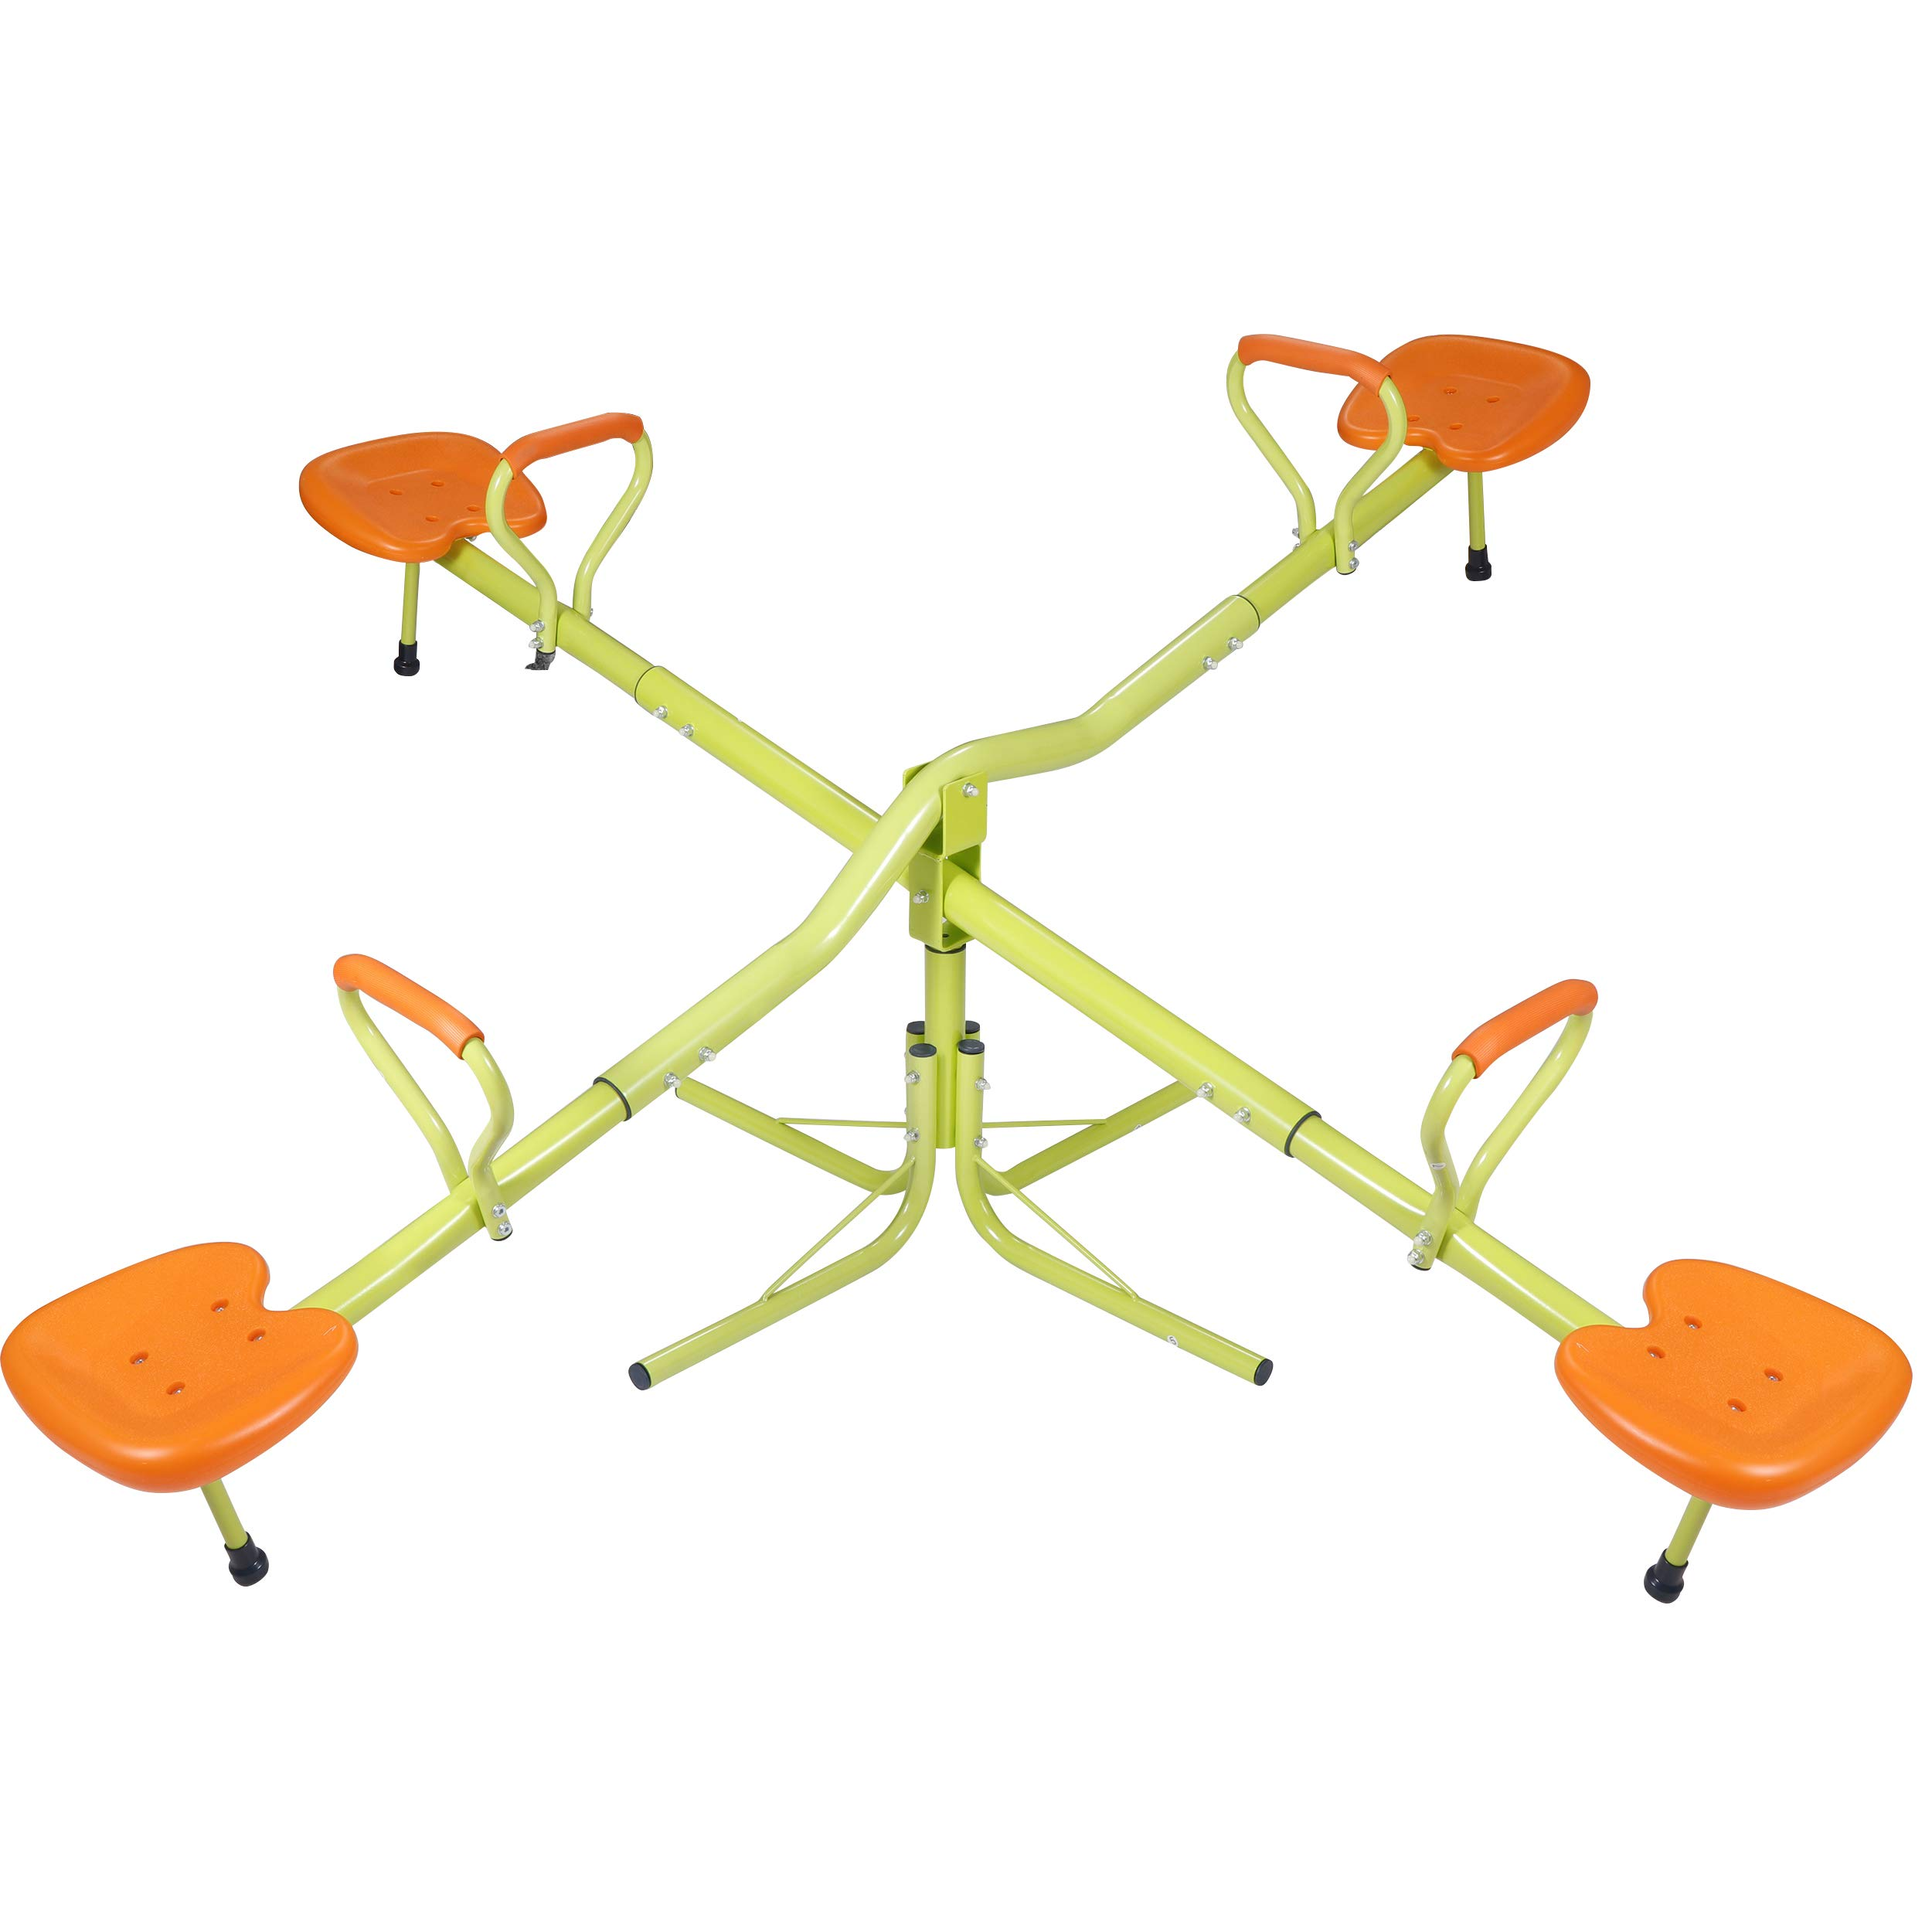 SUPER DEAL Extendable Quad 4 Seat Seesaw Rotator Teeter-Totter 360° Rotate - All Steel Tubes - Weather&Rust Resistant - for Indoor&Outdoor Use  (Orange&Green) by SUPER DEAL